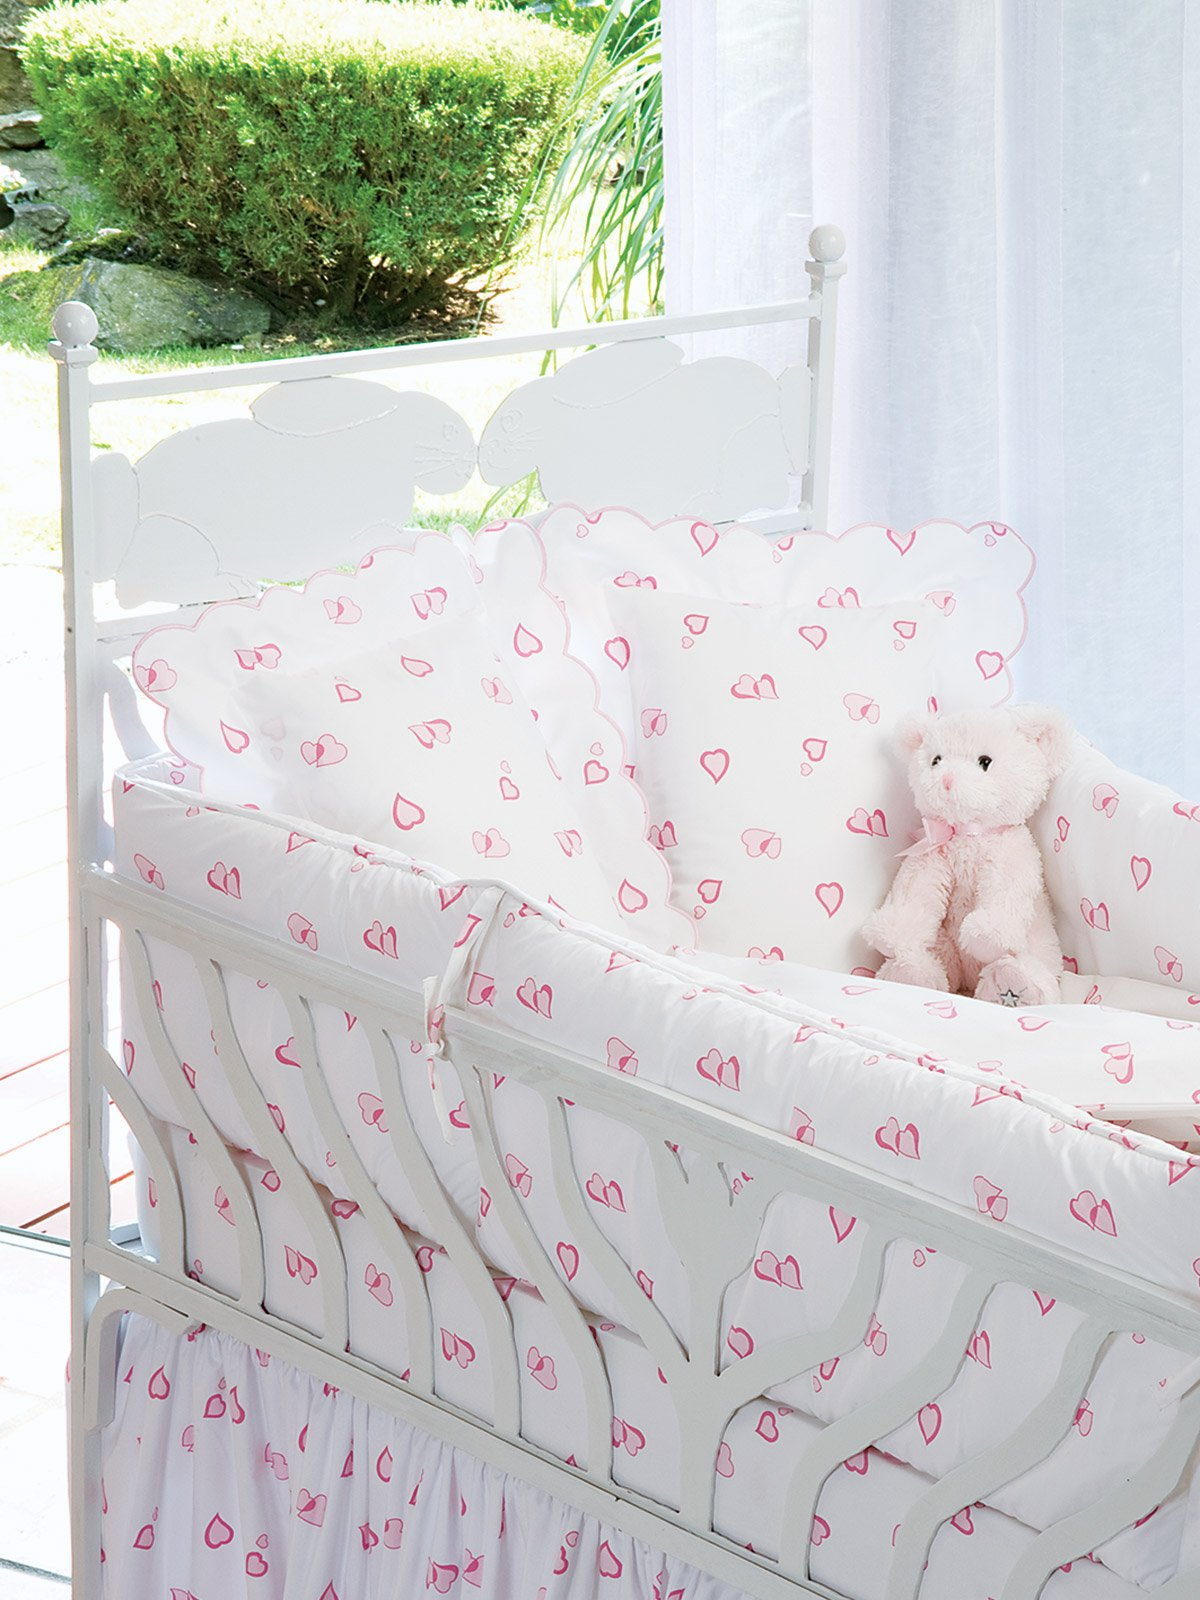 e7dc7ca2d6 Lovable 21 Baby - Luxury Pillows - Luxury Bedding - Italian Bed ...